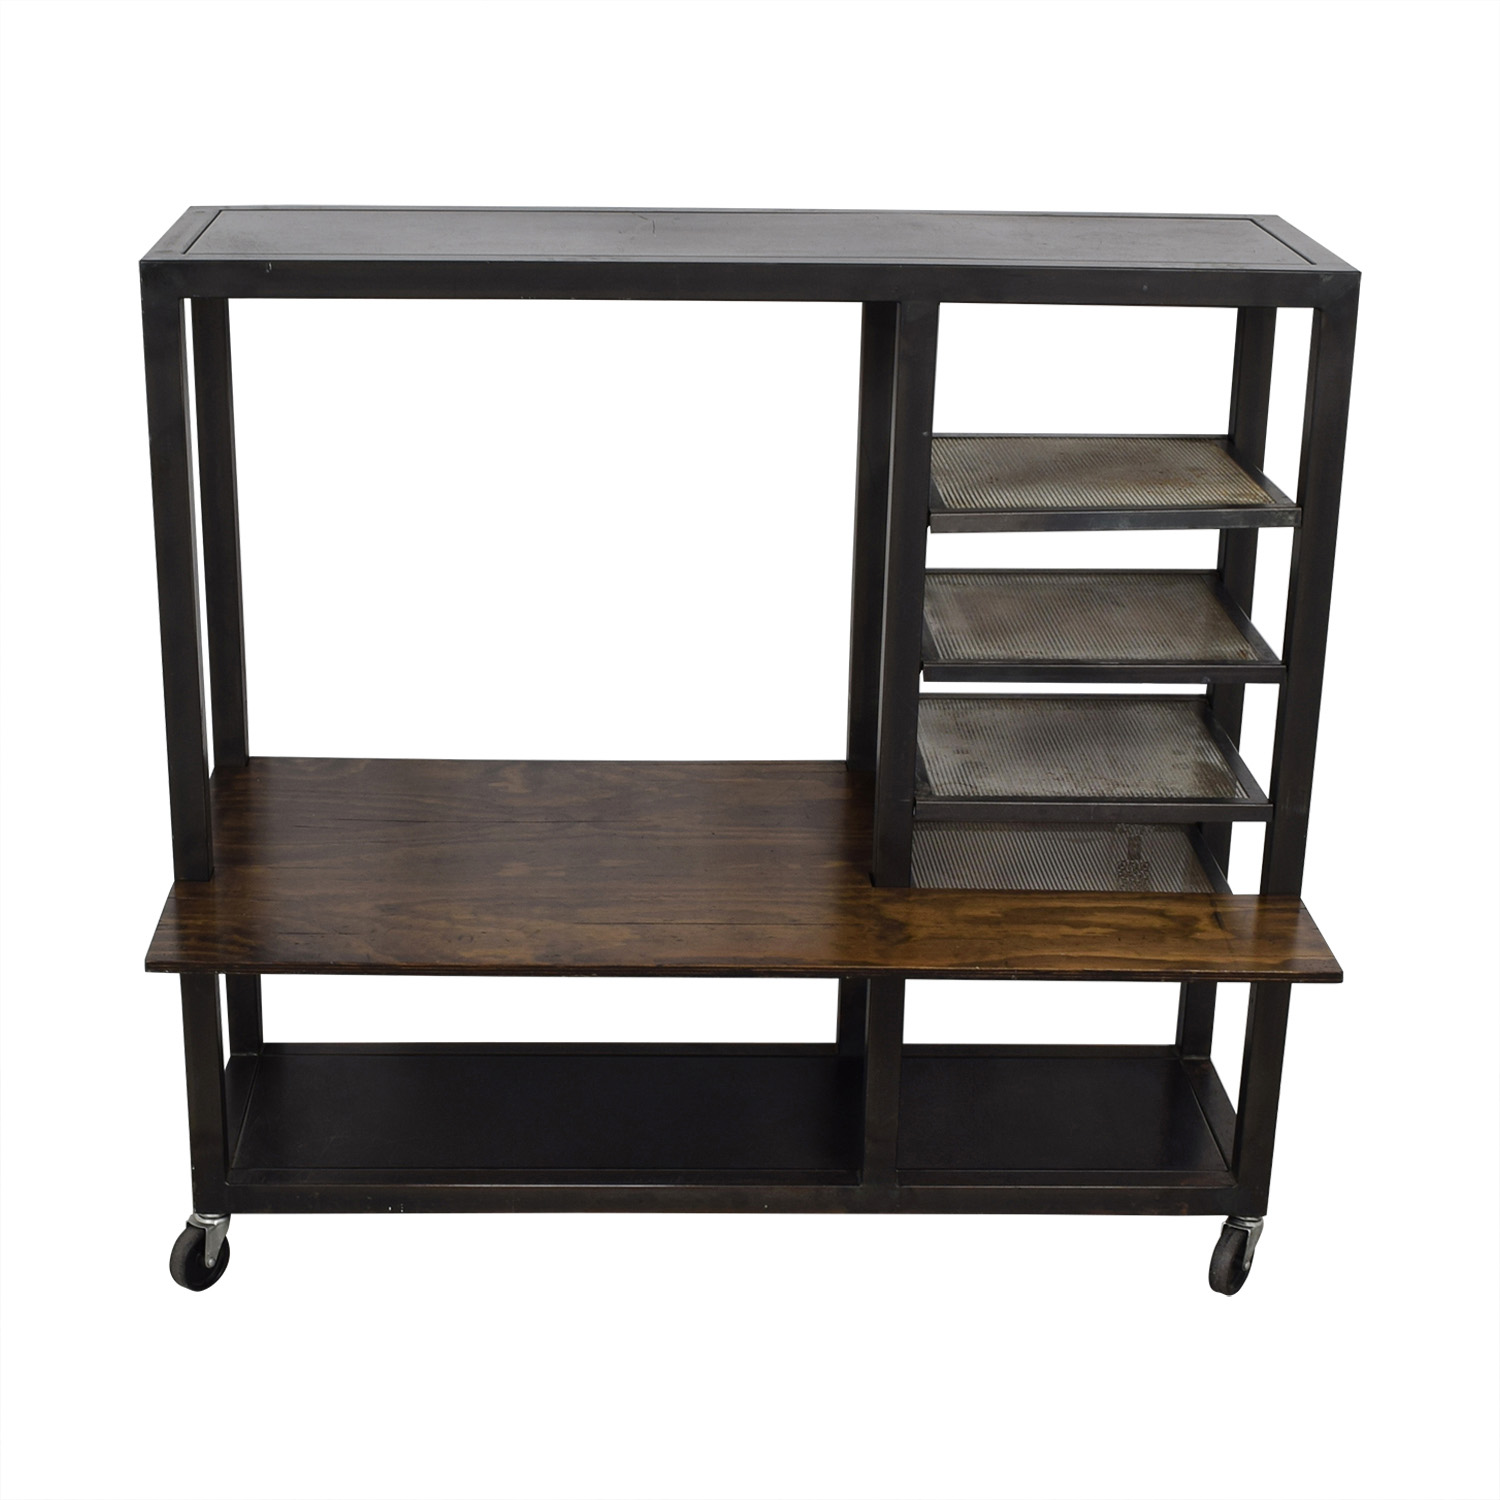 Industrial Reclaimed Wood Desk and Shelves